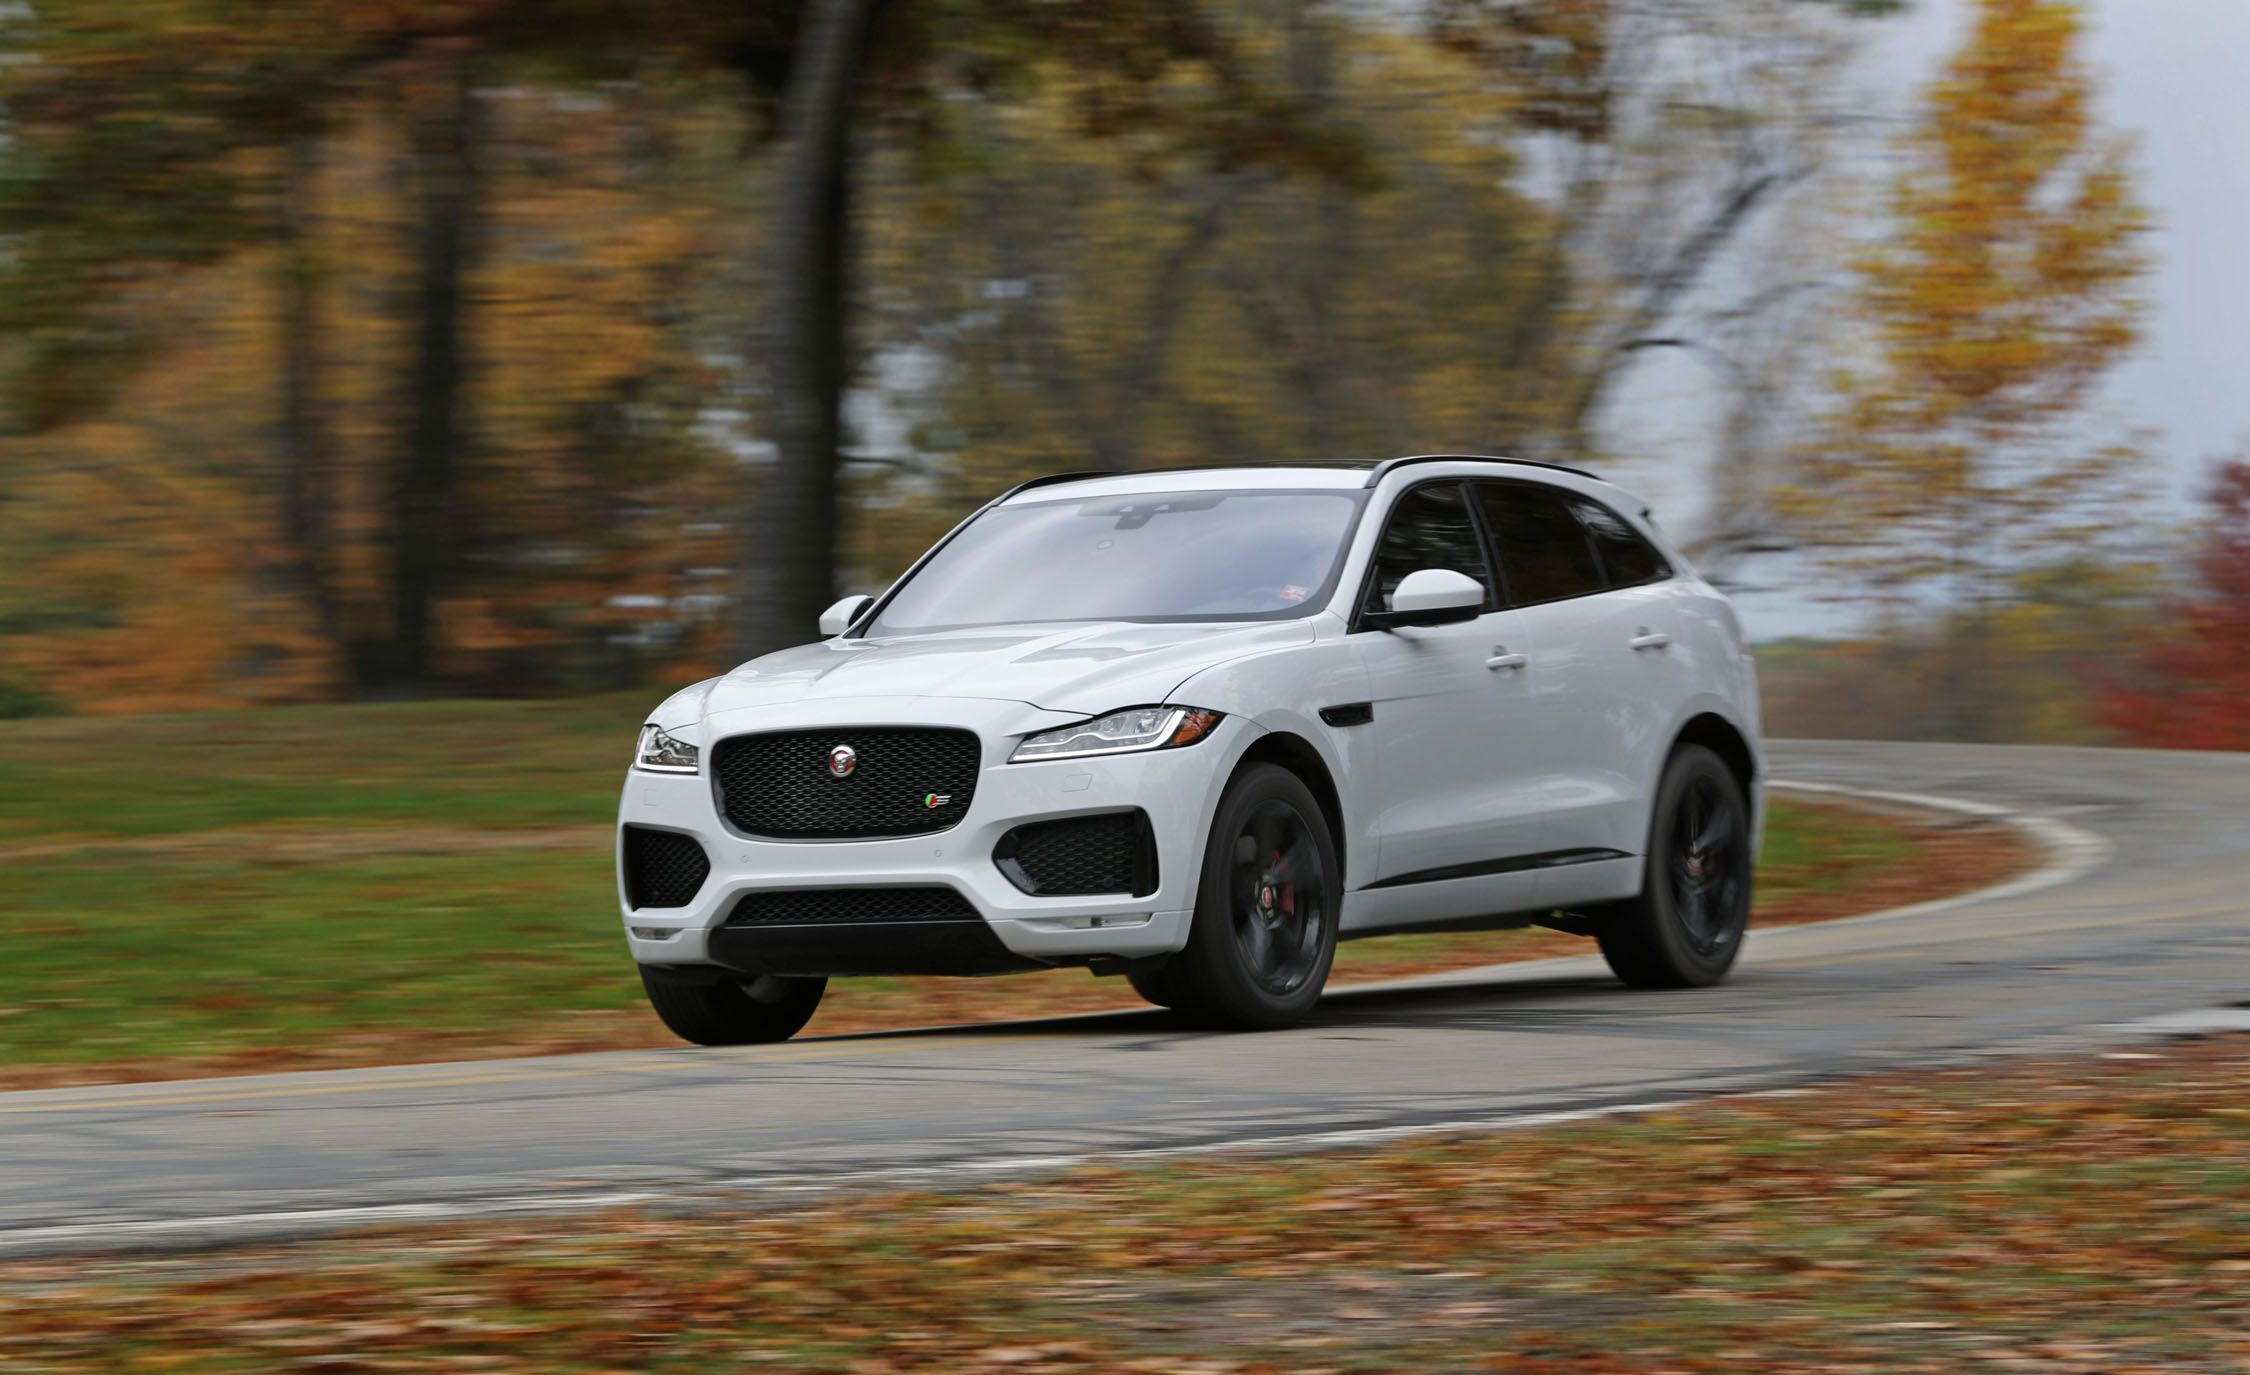 jaguar f pace reviews jaguar f pace price photos and specs car and driver. Black Bedroom Furniture Sets. Home Design Ideas